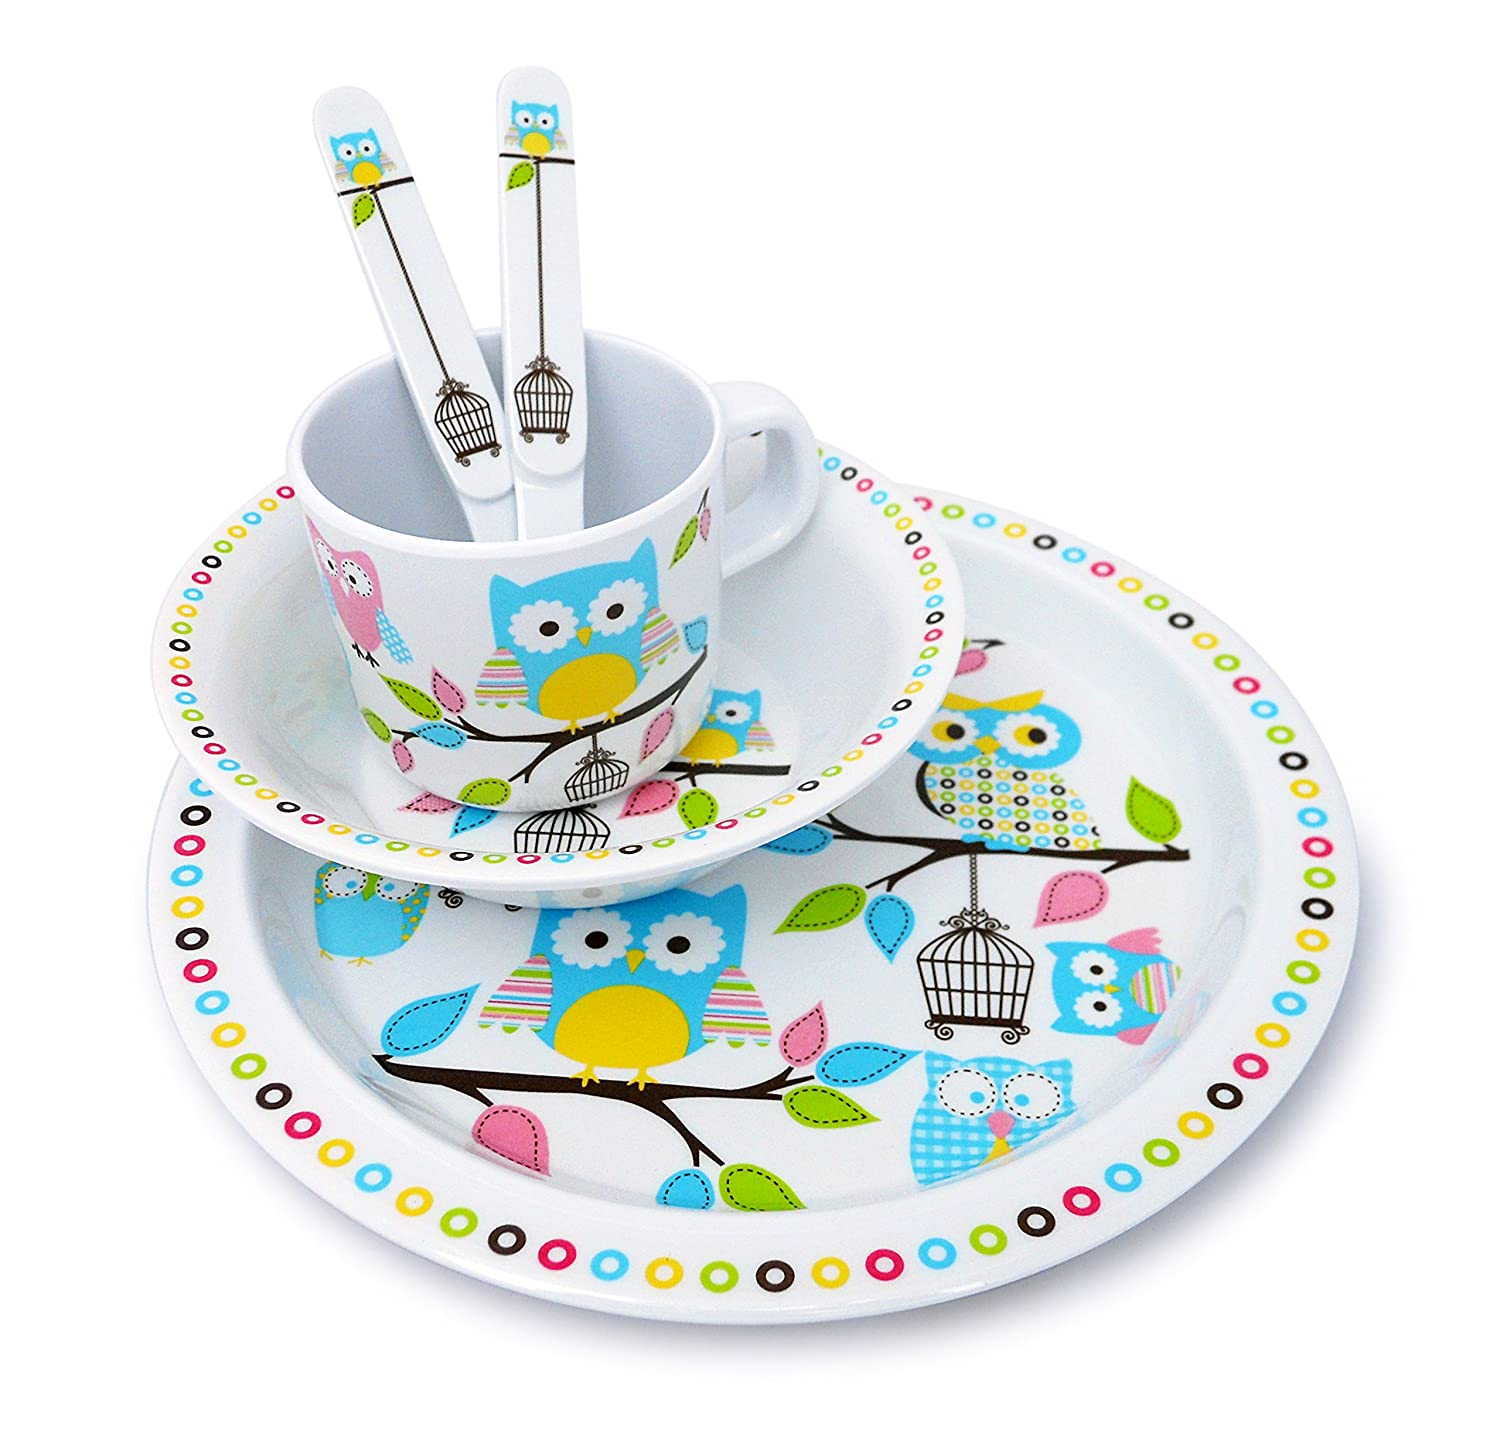 Culina Kids Plate and Bowl Melamine Dinnerware - Owl. Set of 5